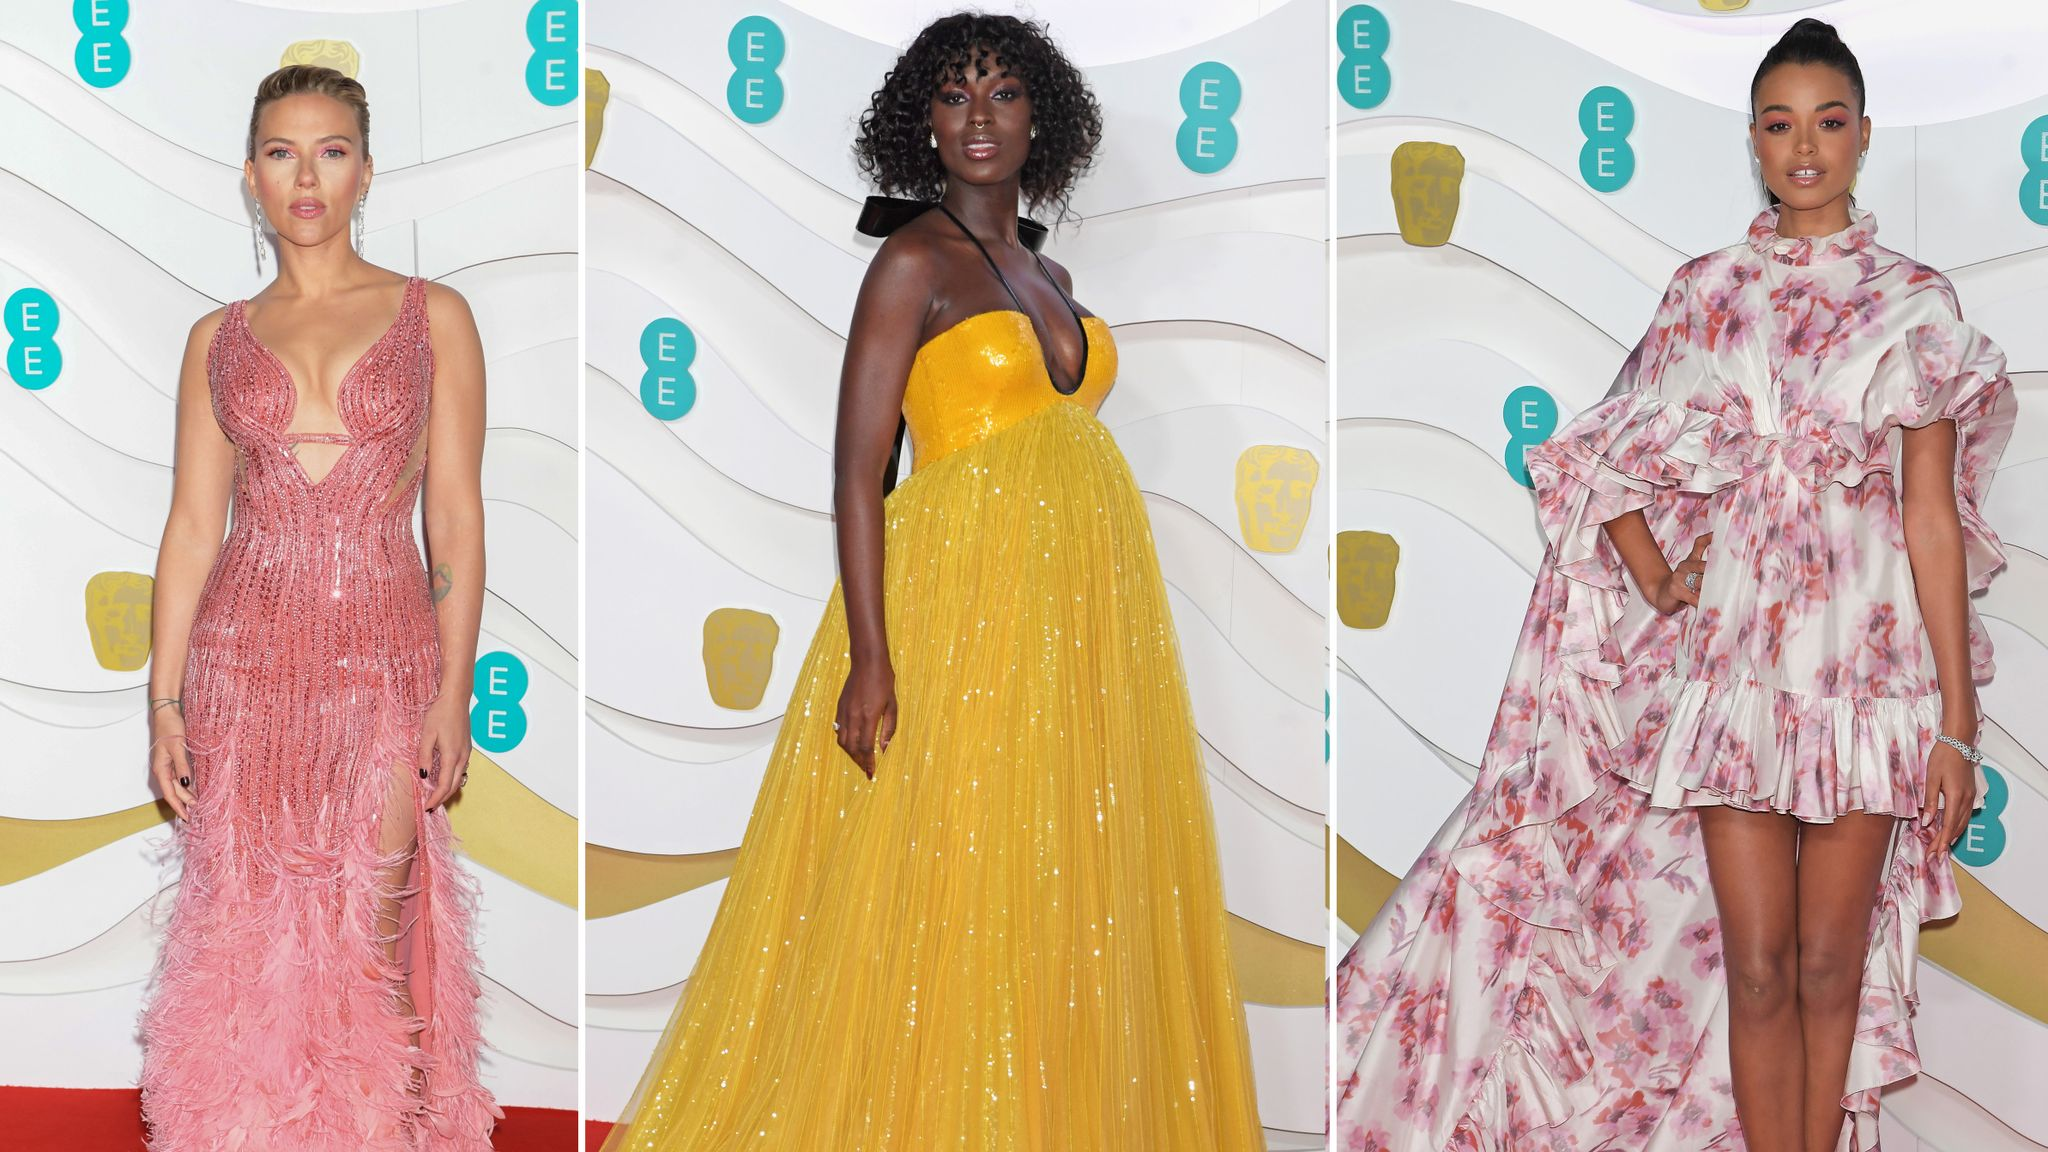 BAFTA 2020 fashion: The best of the red carpet looks